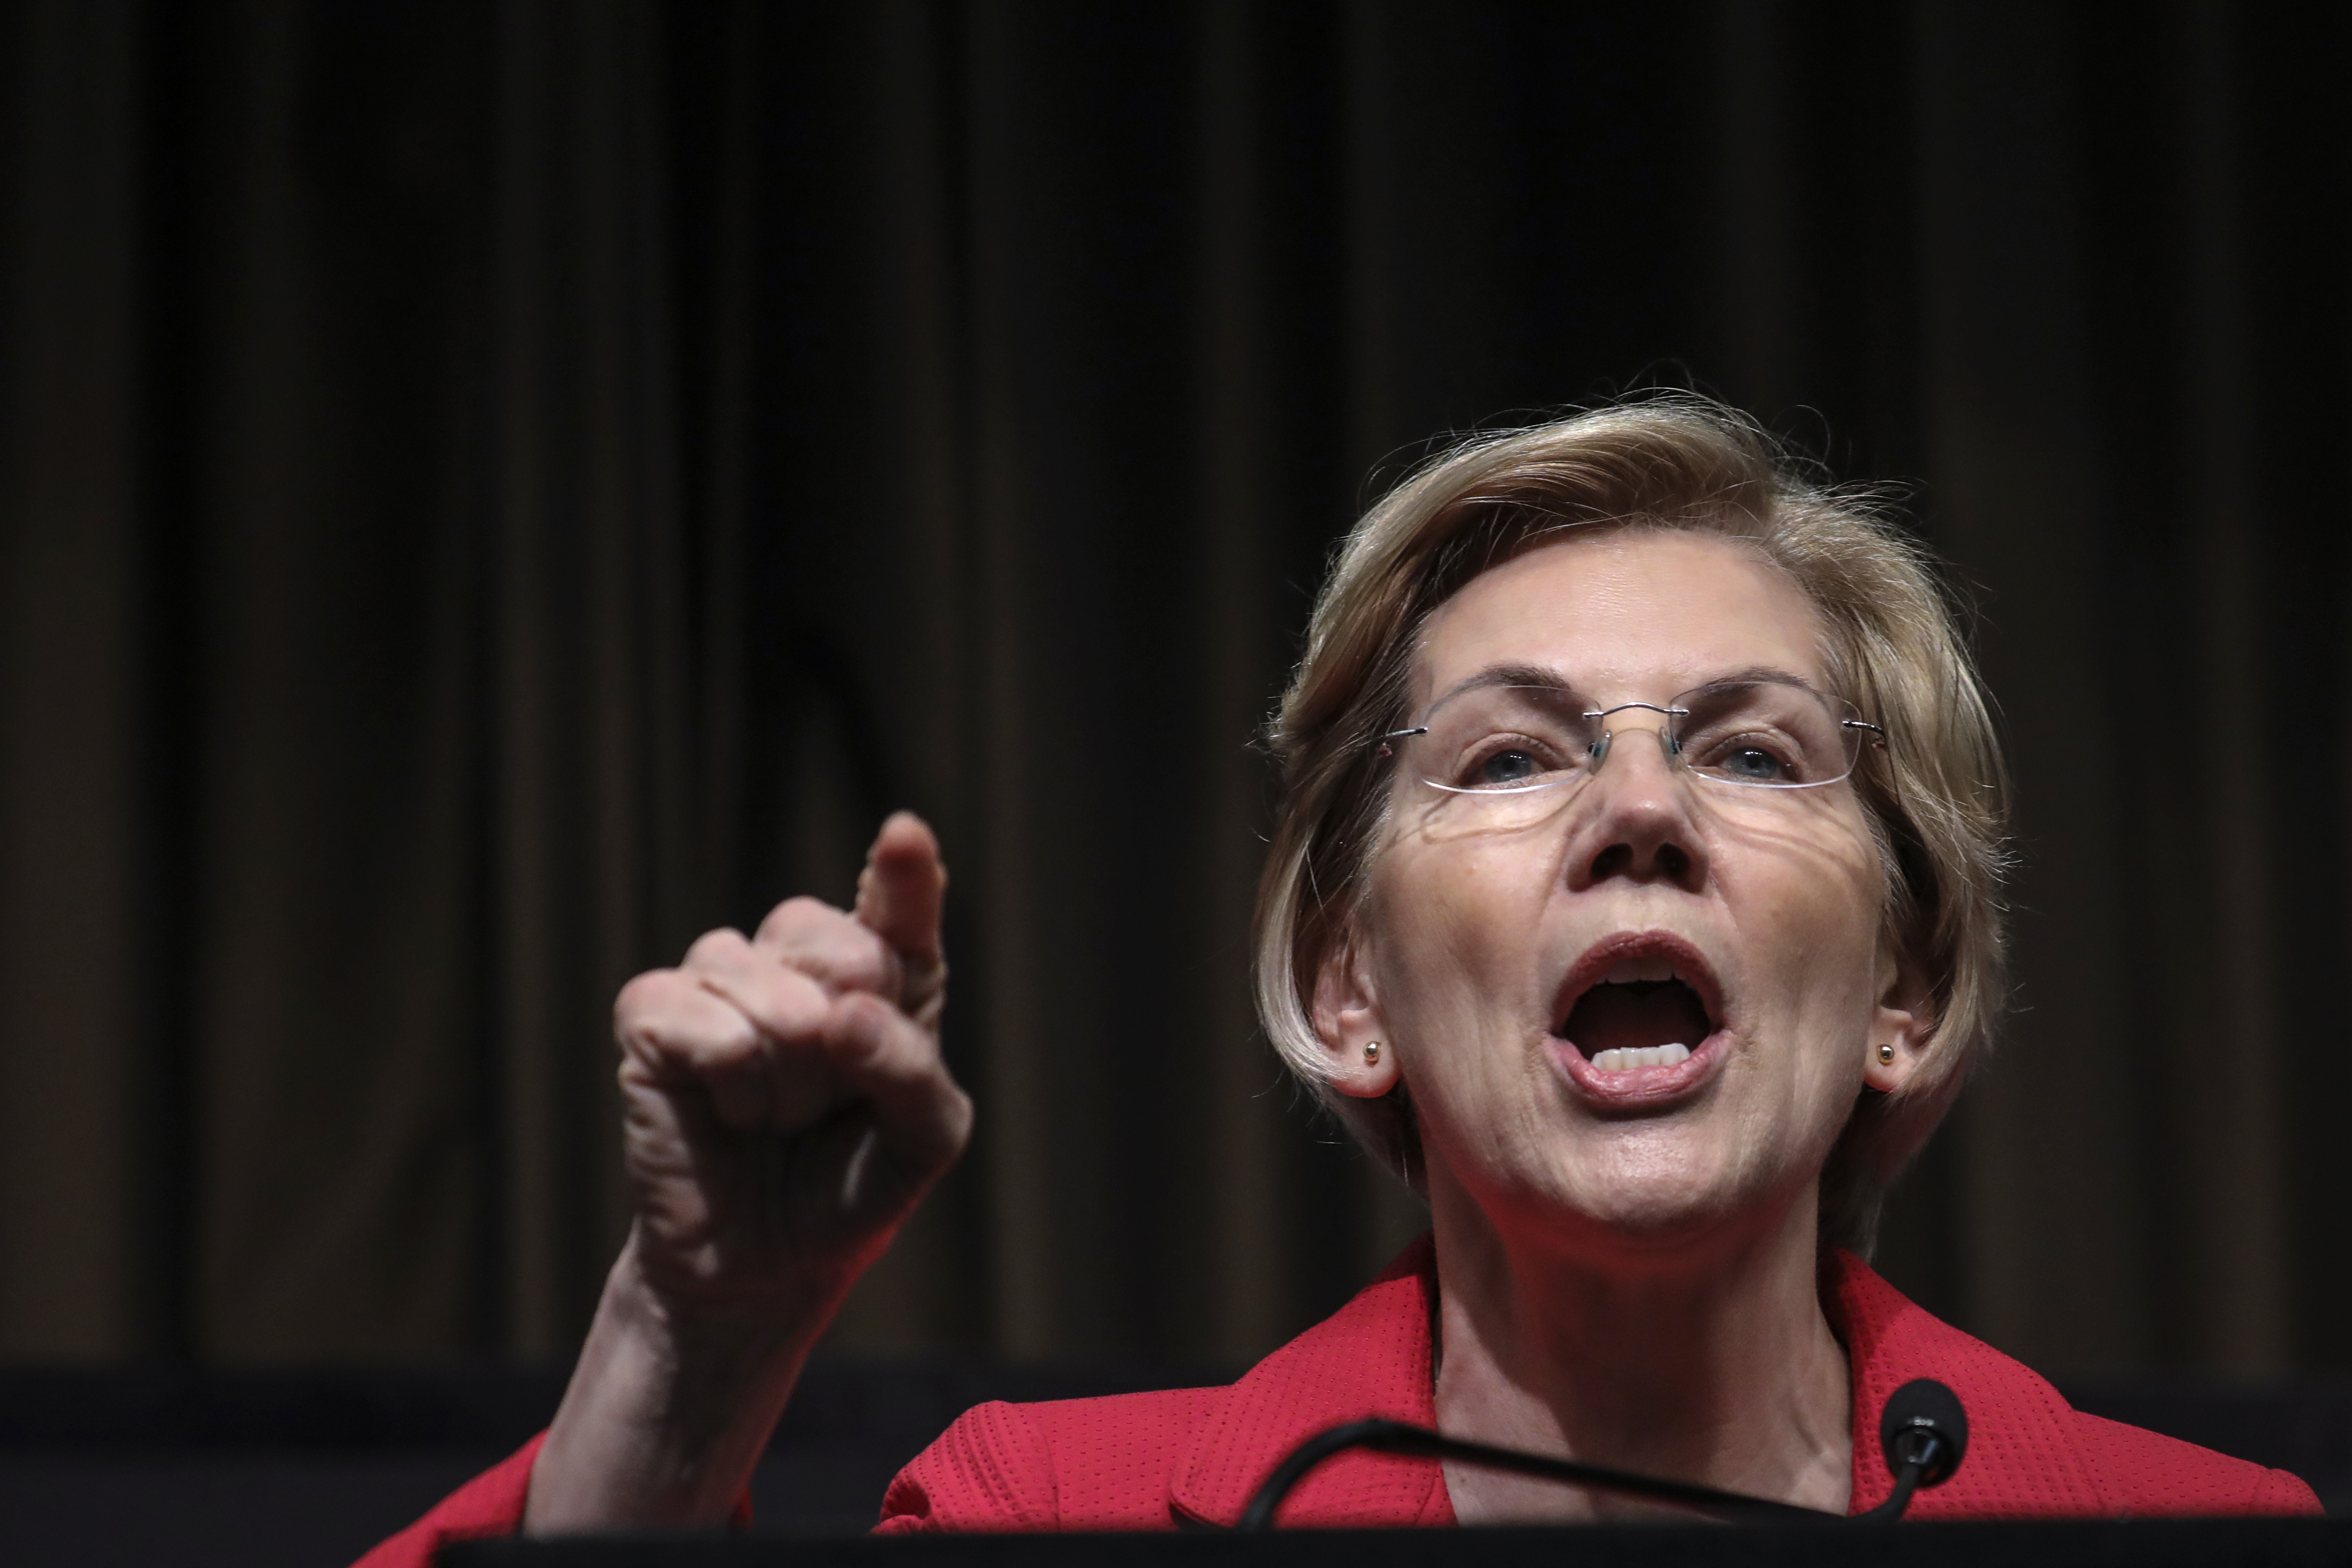 NEW YORK, NY - APRIL 5: Democratic presidential candidate U.S. Sen. Elizabeth Warren (D-MA) speaks at the National Action Network's annual convention, April 5, 2019 in New York City. A dozen 2020 Democratic presidential candidates are speaking at the organization's convention this week. Founded by Rev. Al Sharpton in 1991, the National Action Network is one of the most influential African American organizations dedicated to civil rights in America. (Photo by Drew Angerer/Getty Images)